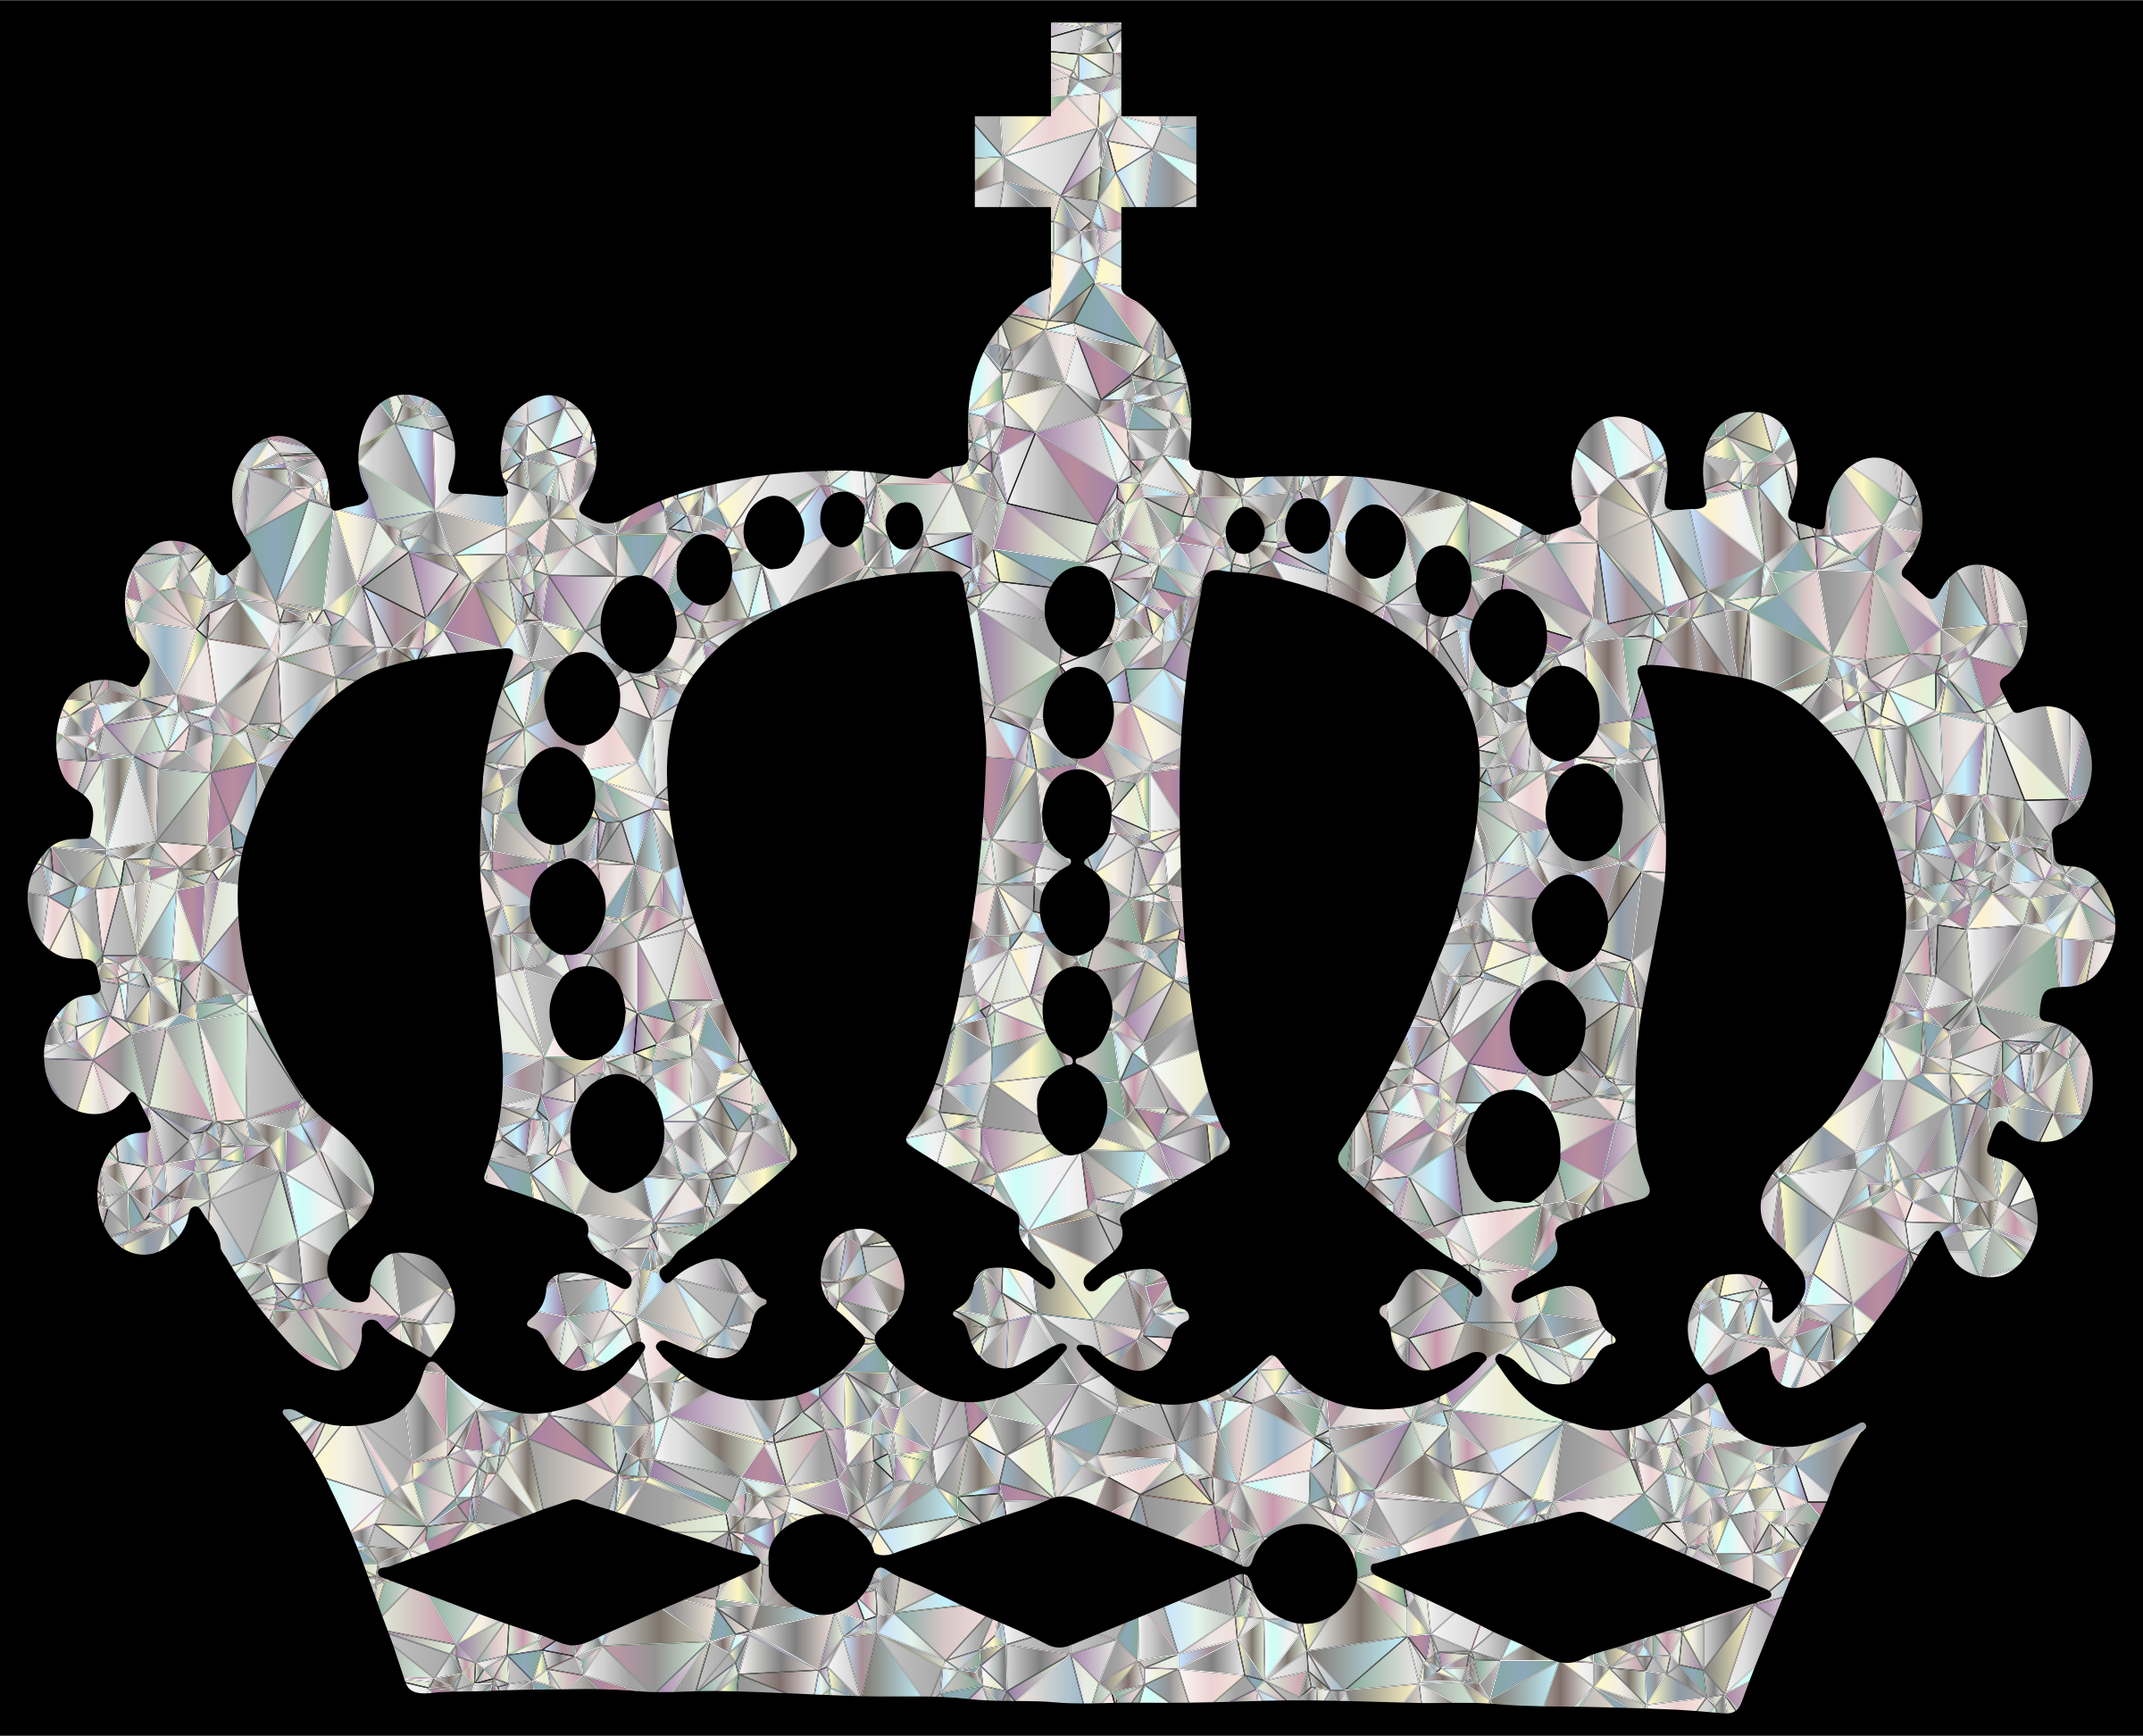 Crystal Royal Crown by GDJ